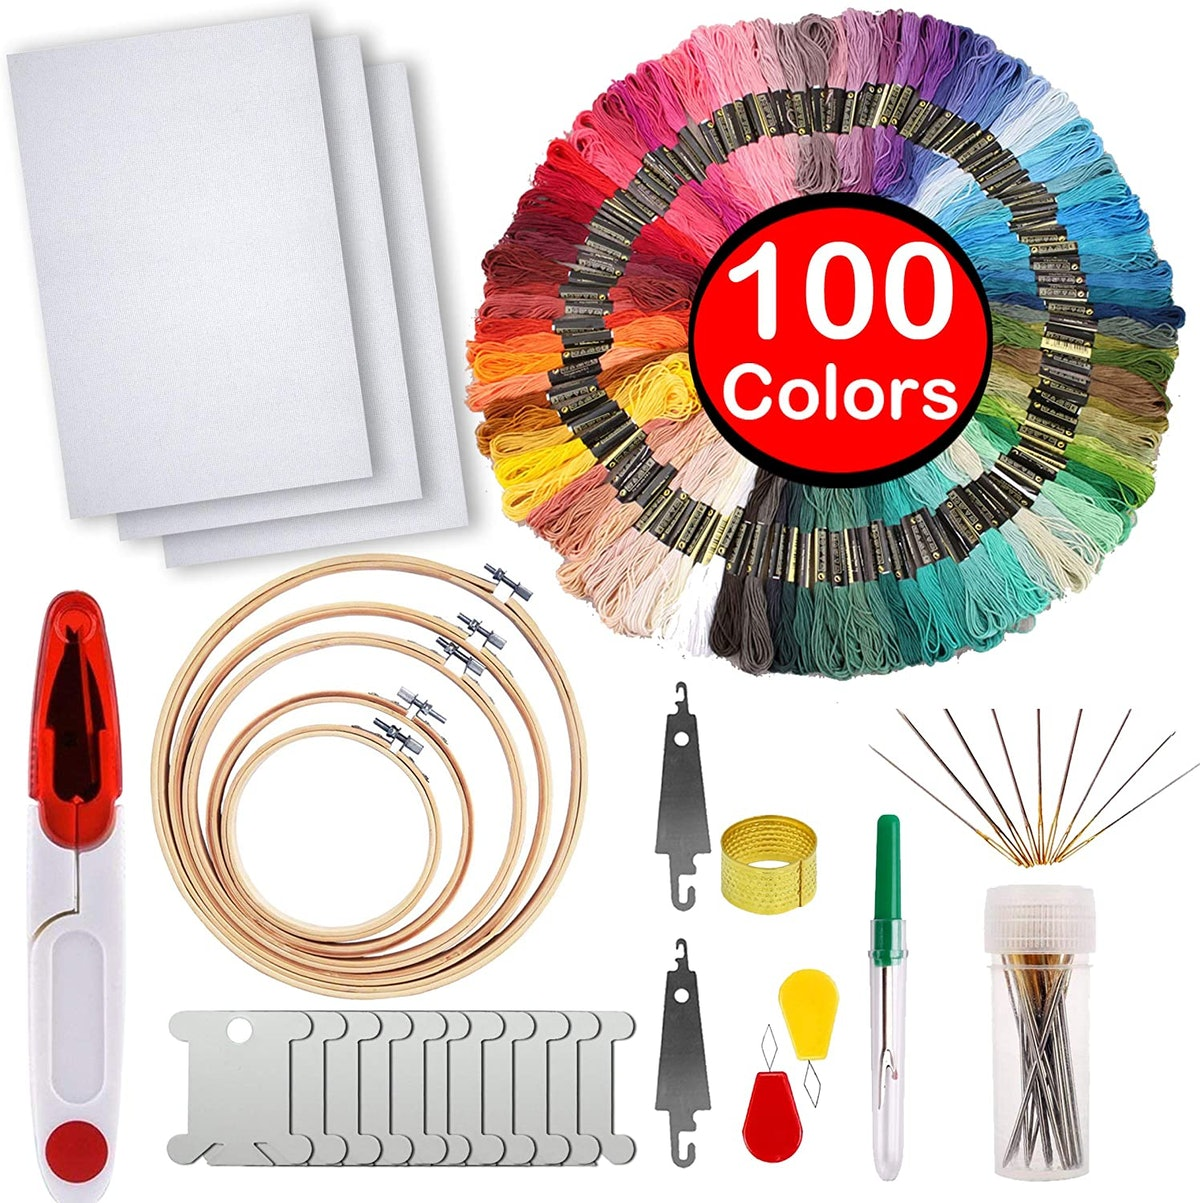 MDPQT Embroidery Starter Kit